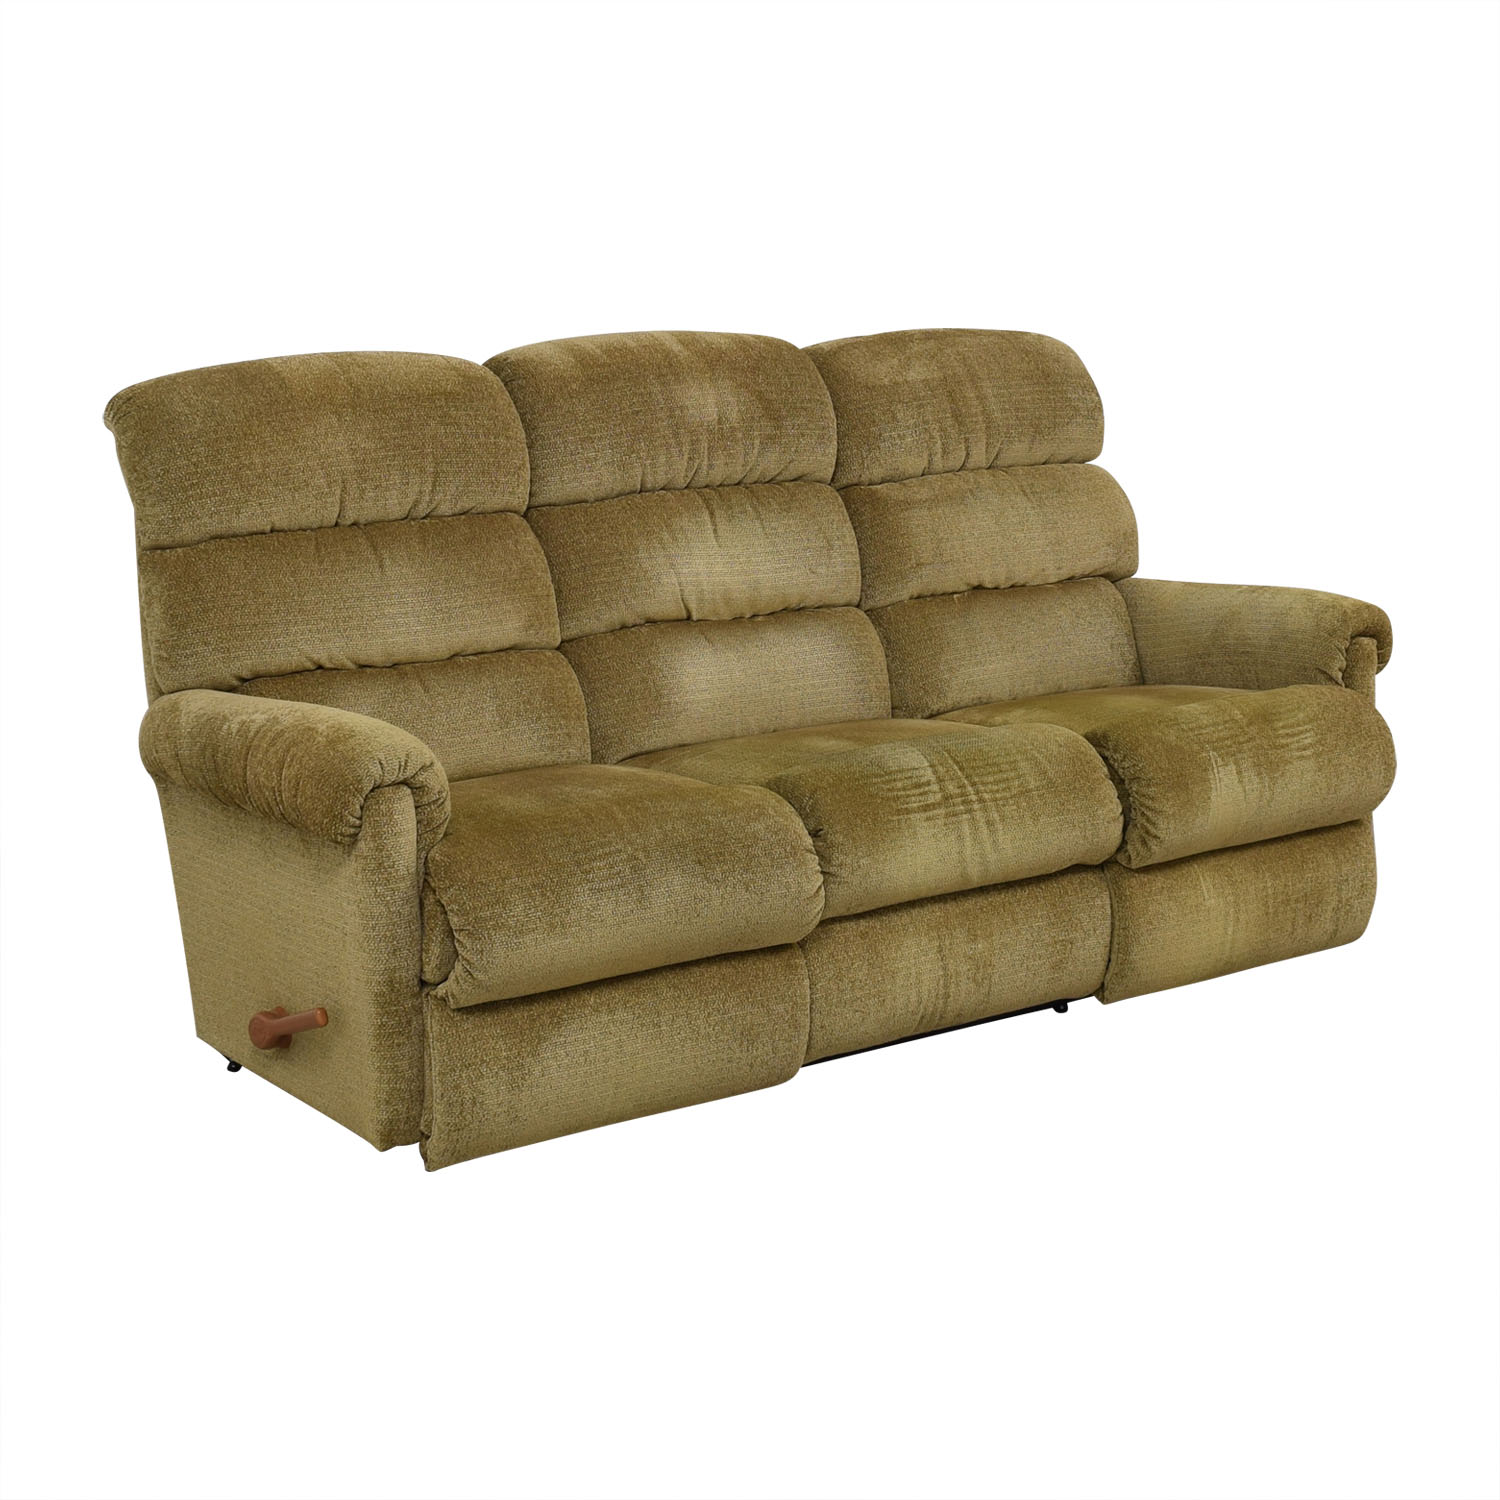 shop La-Z-Boy La-Z-Boy Tan Reclining Three-Cushion Sofa online